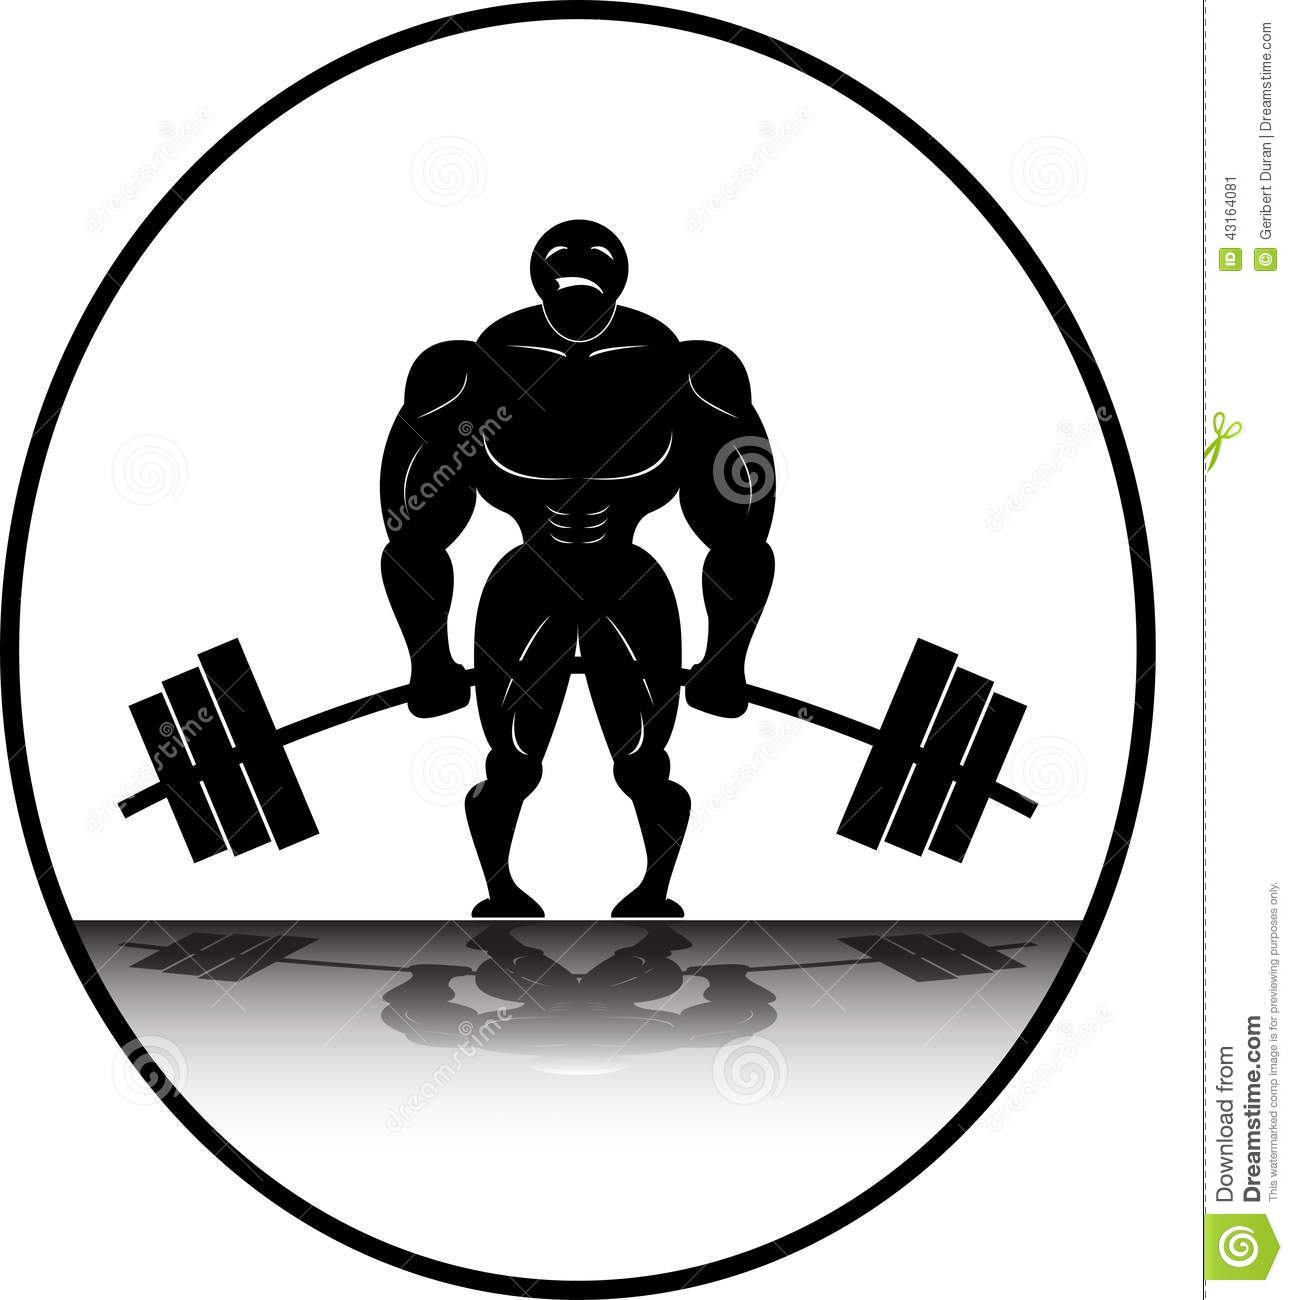 Dead lift clipart - Clipground